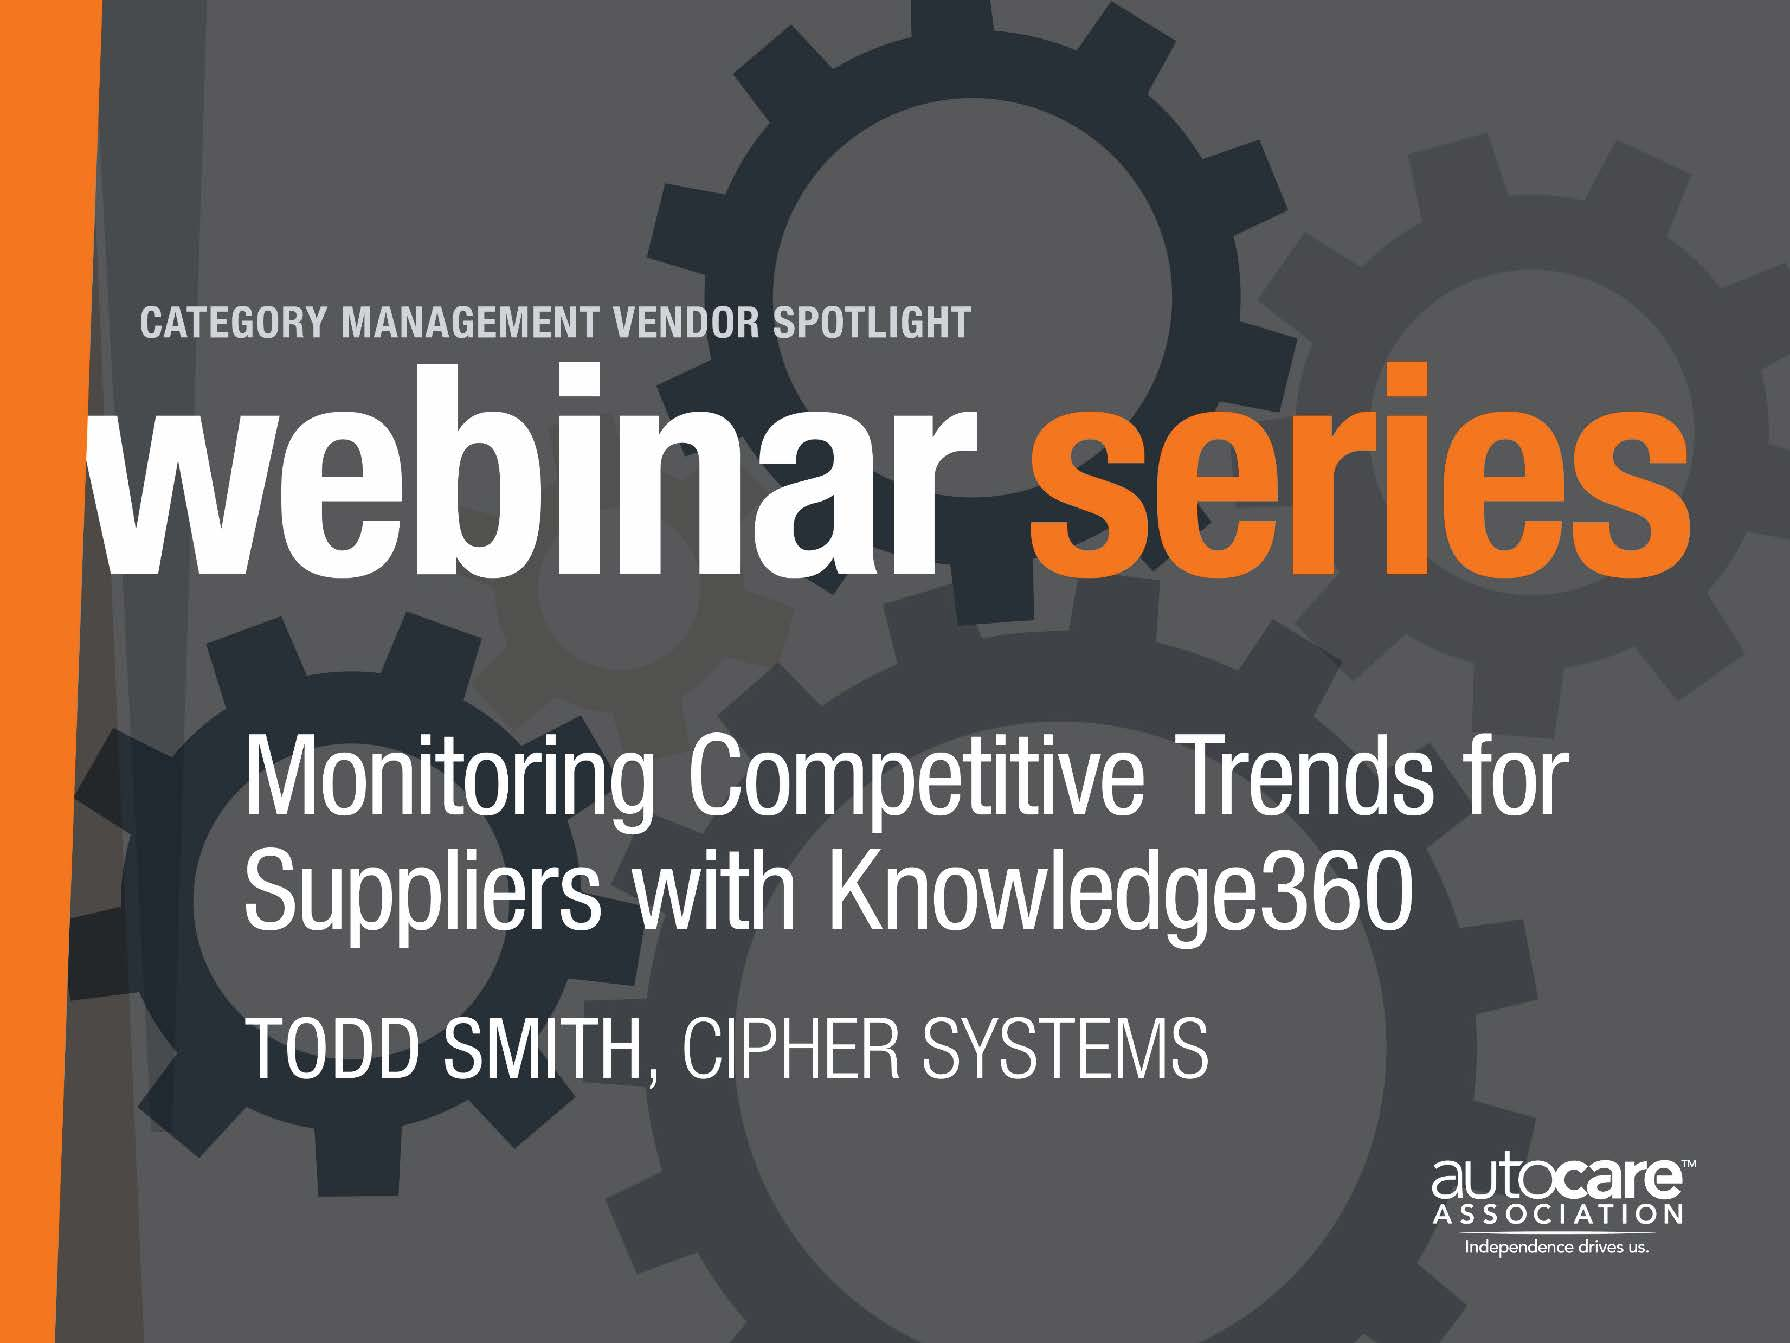 Monitoring Competitive Trends for Suppliers with Knowledge360 by Cipher Systems